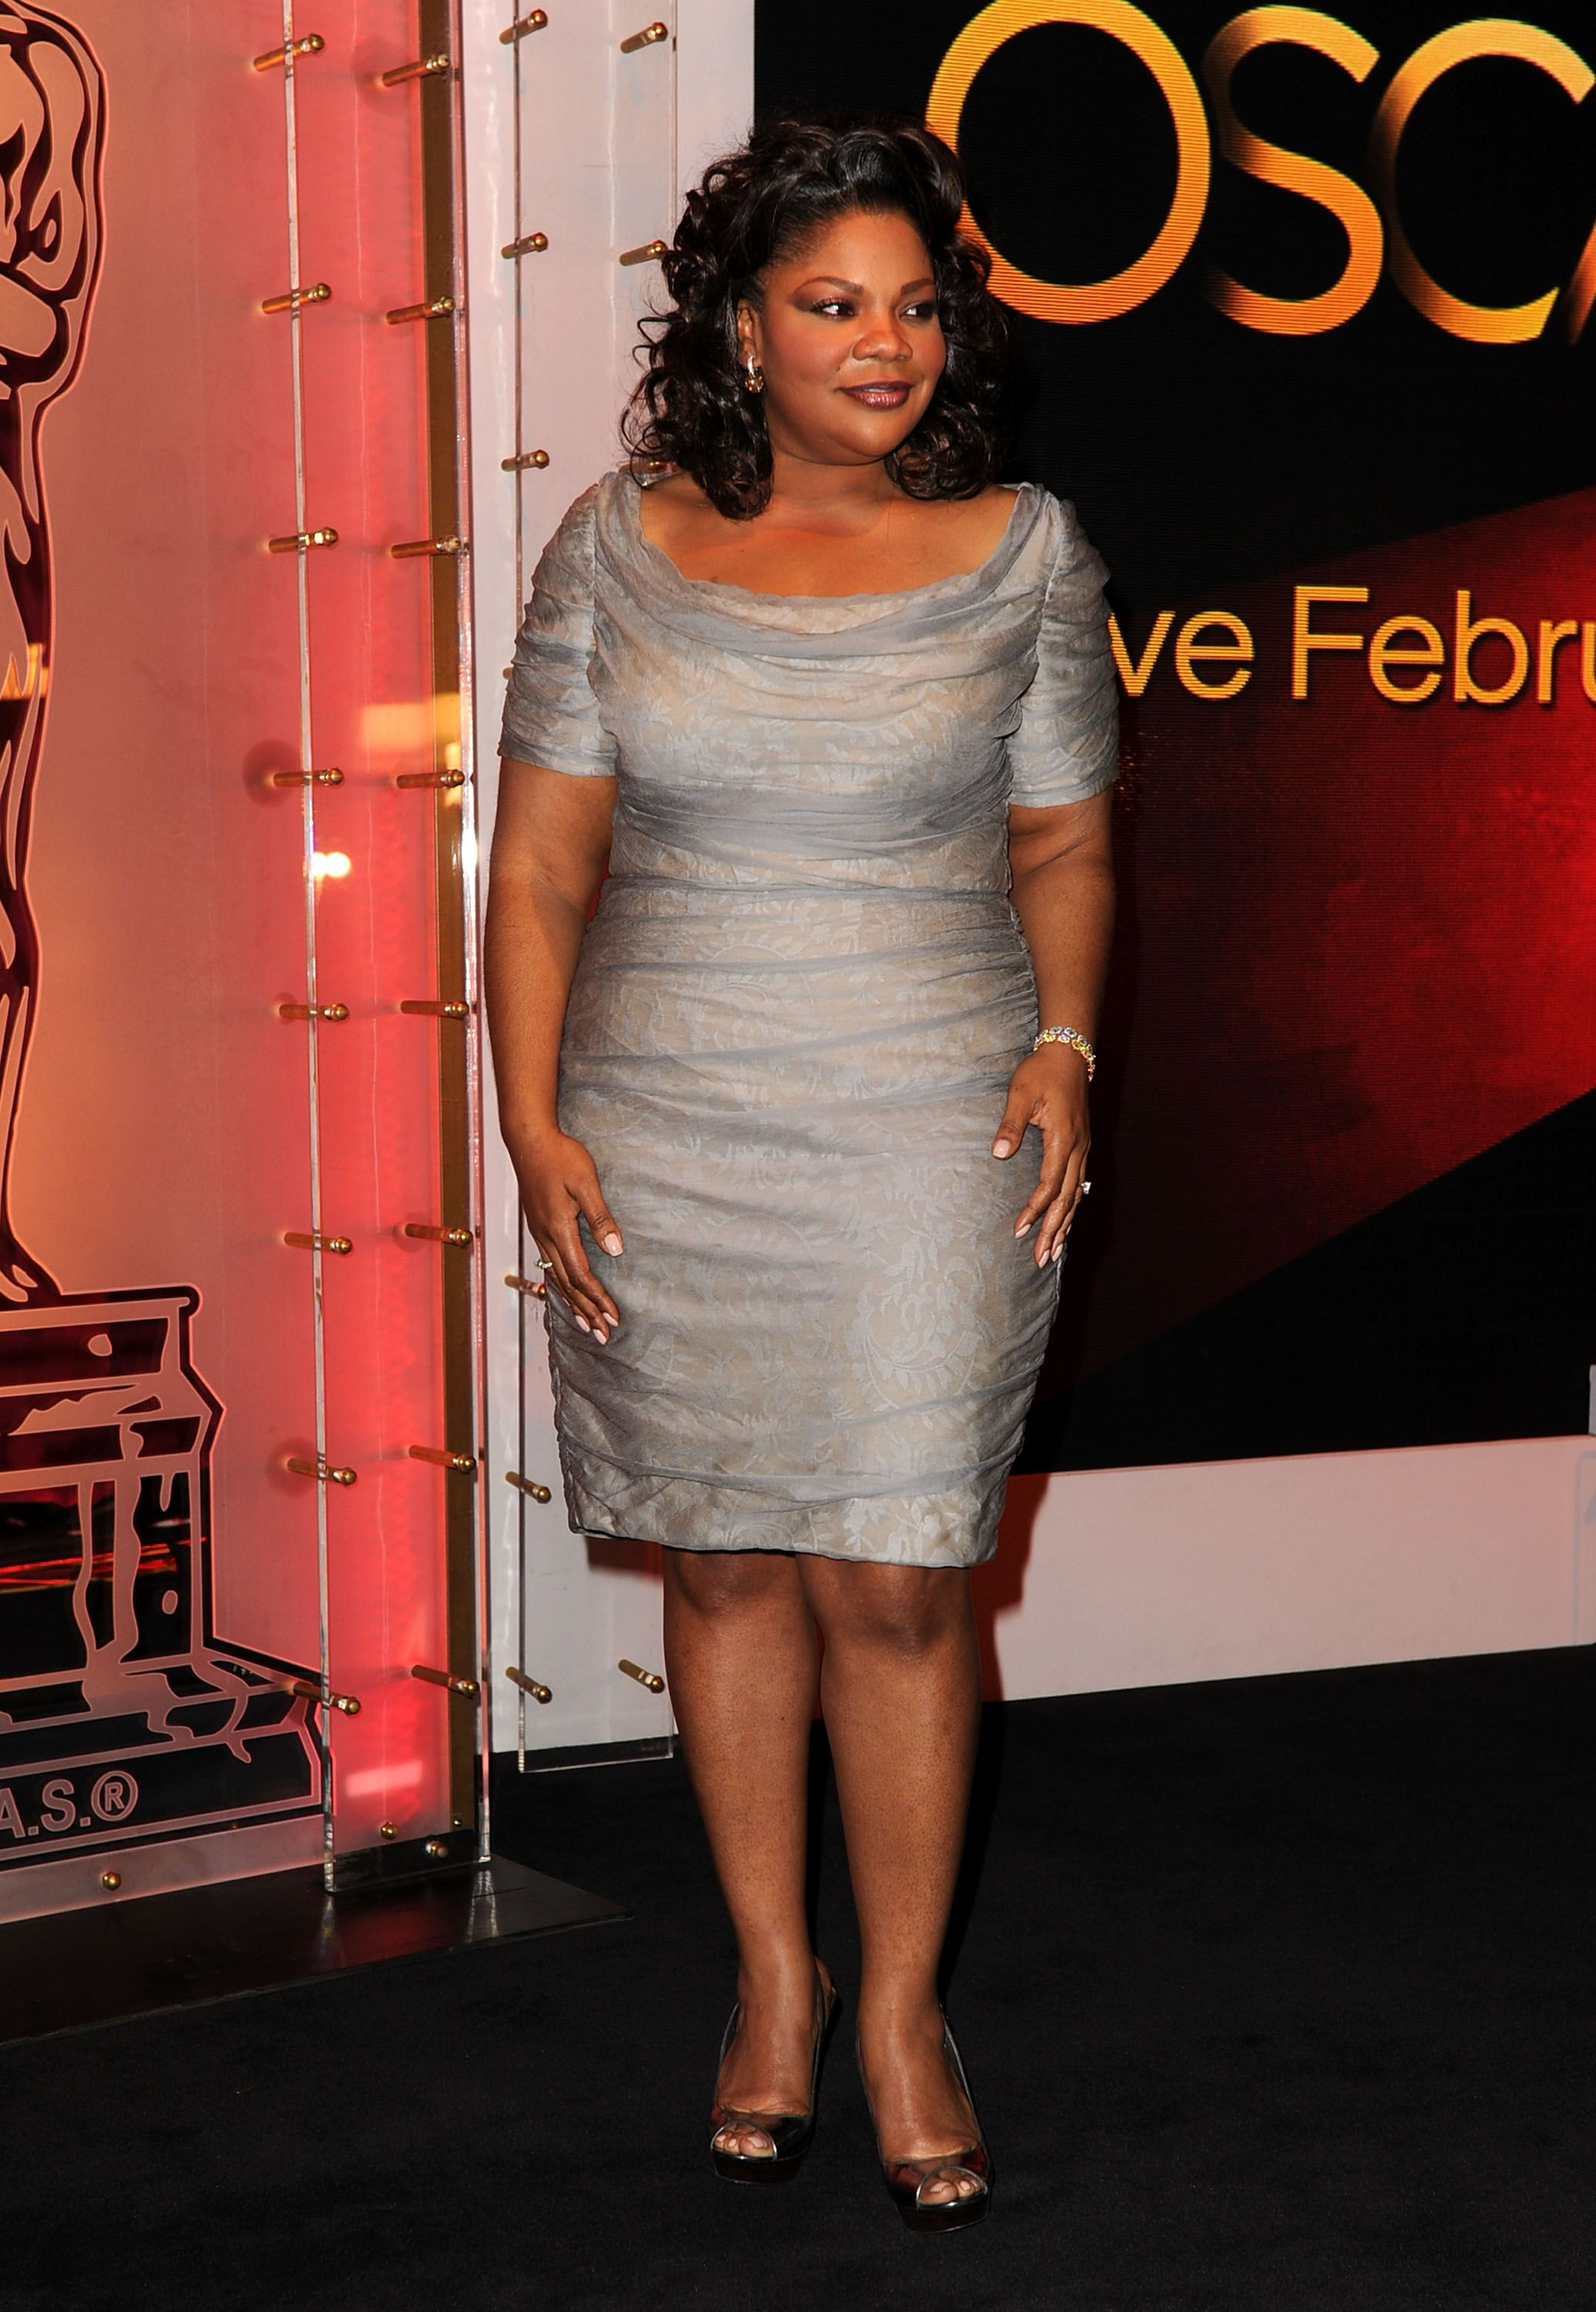 Mo'Nique at the Academy Awards Nominations Announcement on January 25, 2011 in Beverly Hills. | Photo: Getty Images